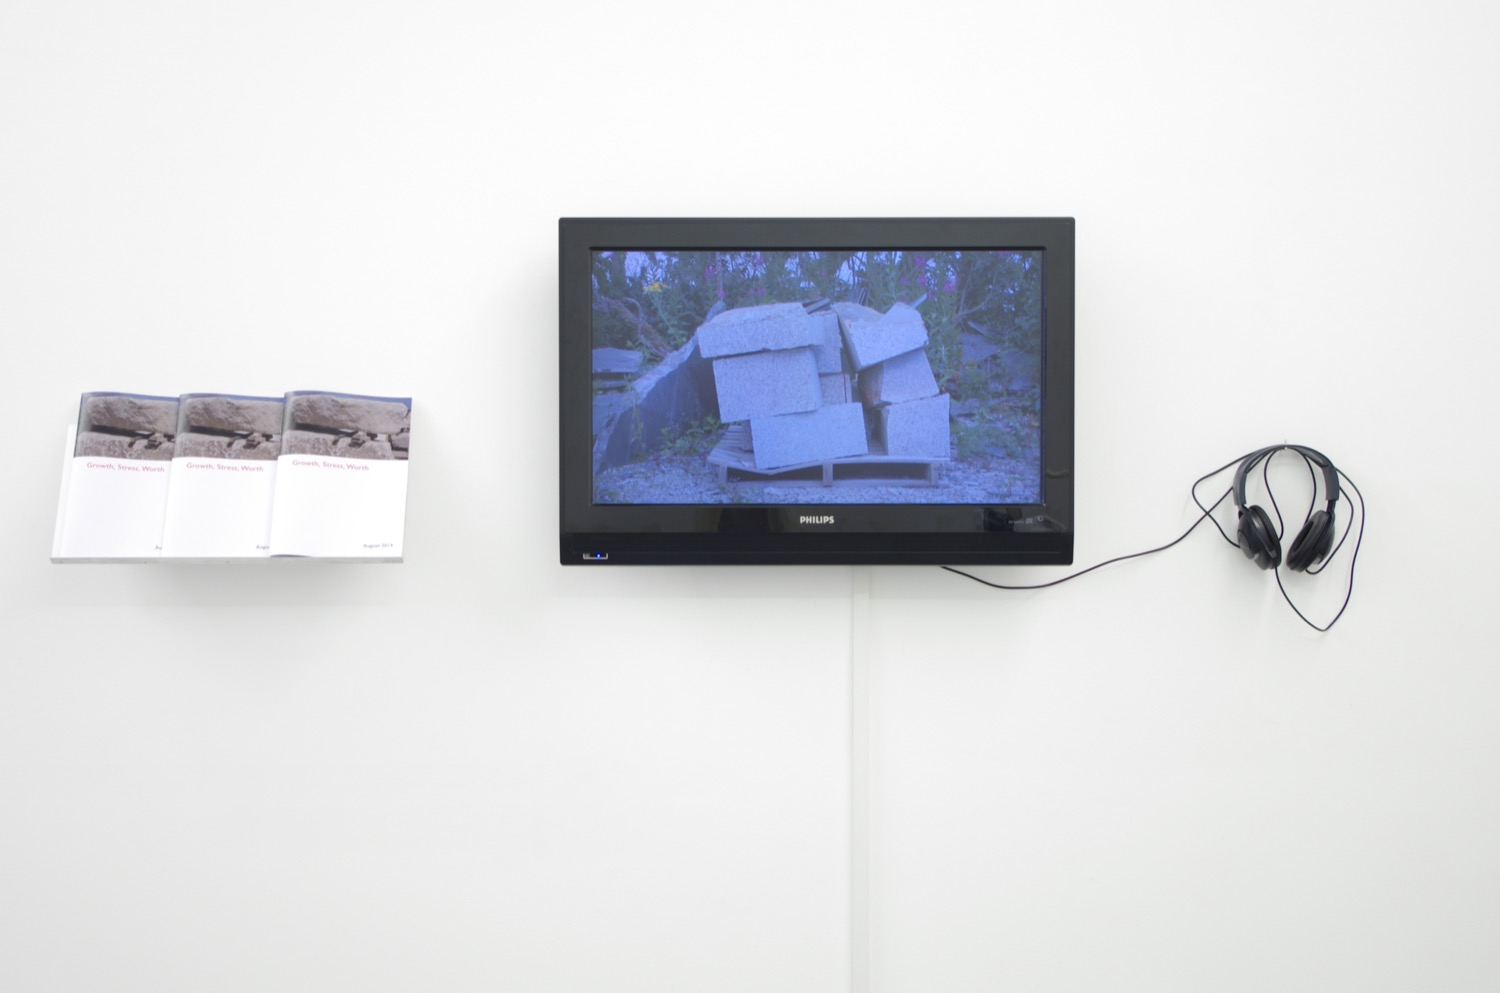 Ross Jardine, installation view at PEER, 2014